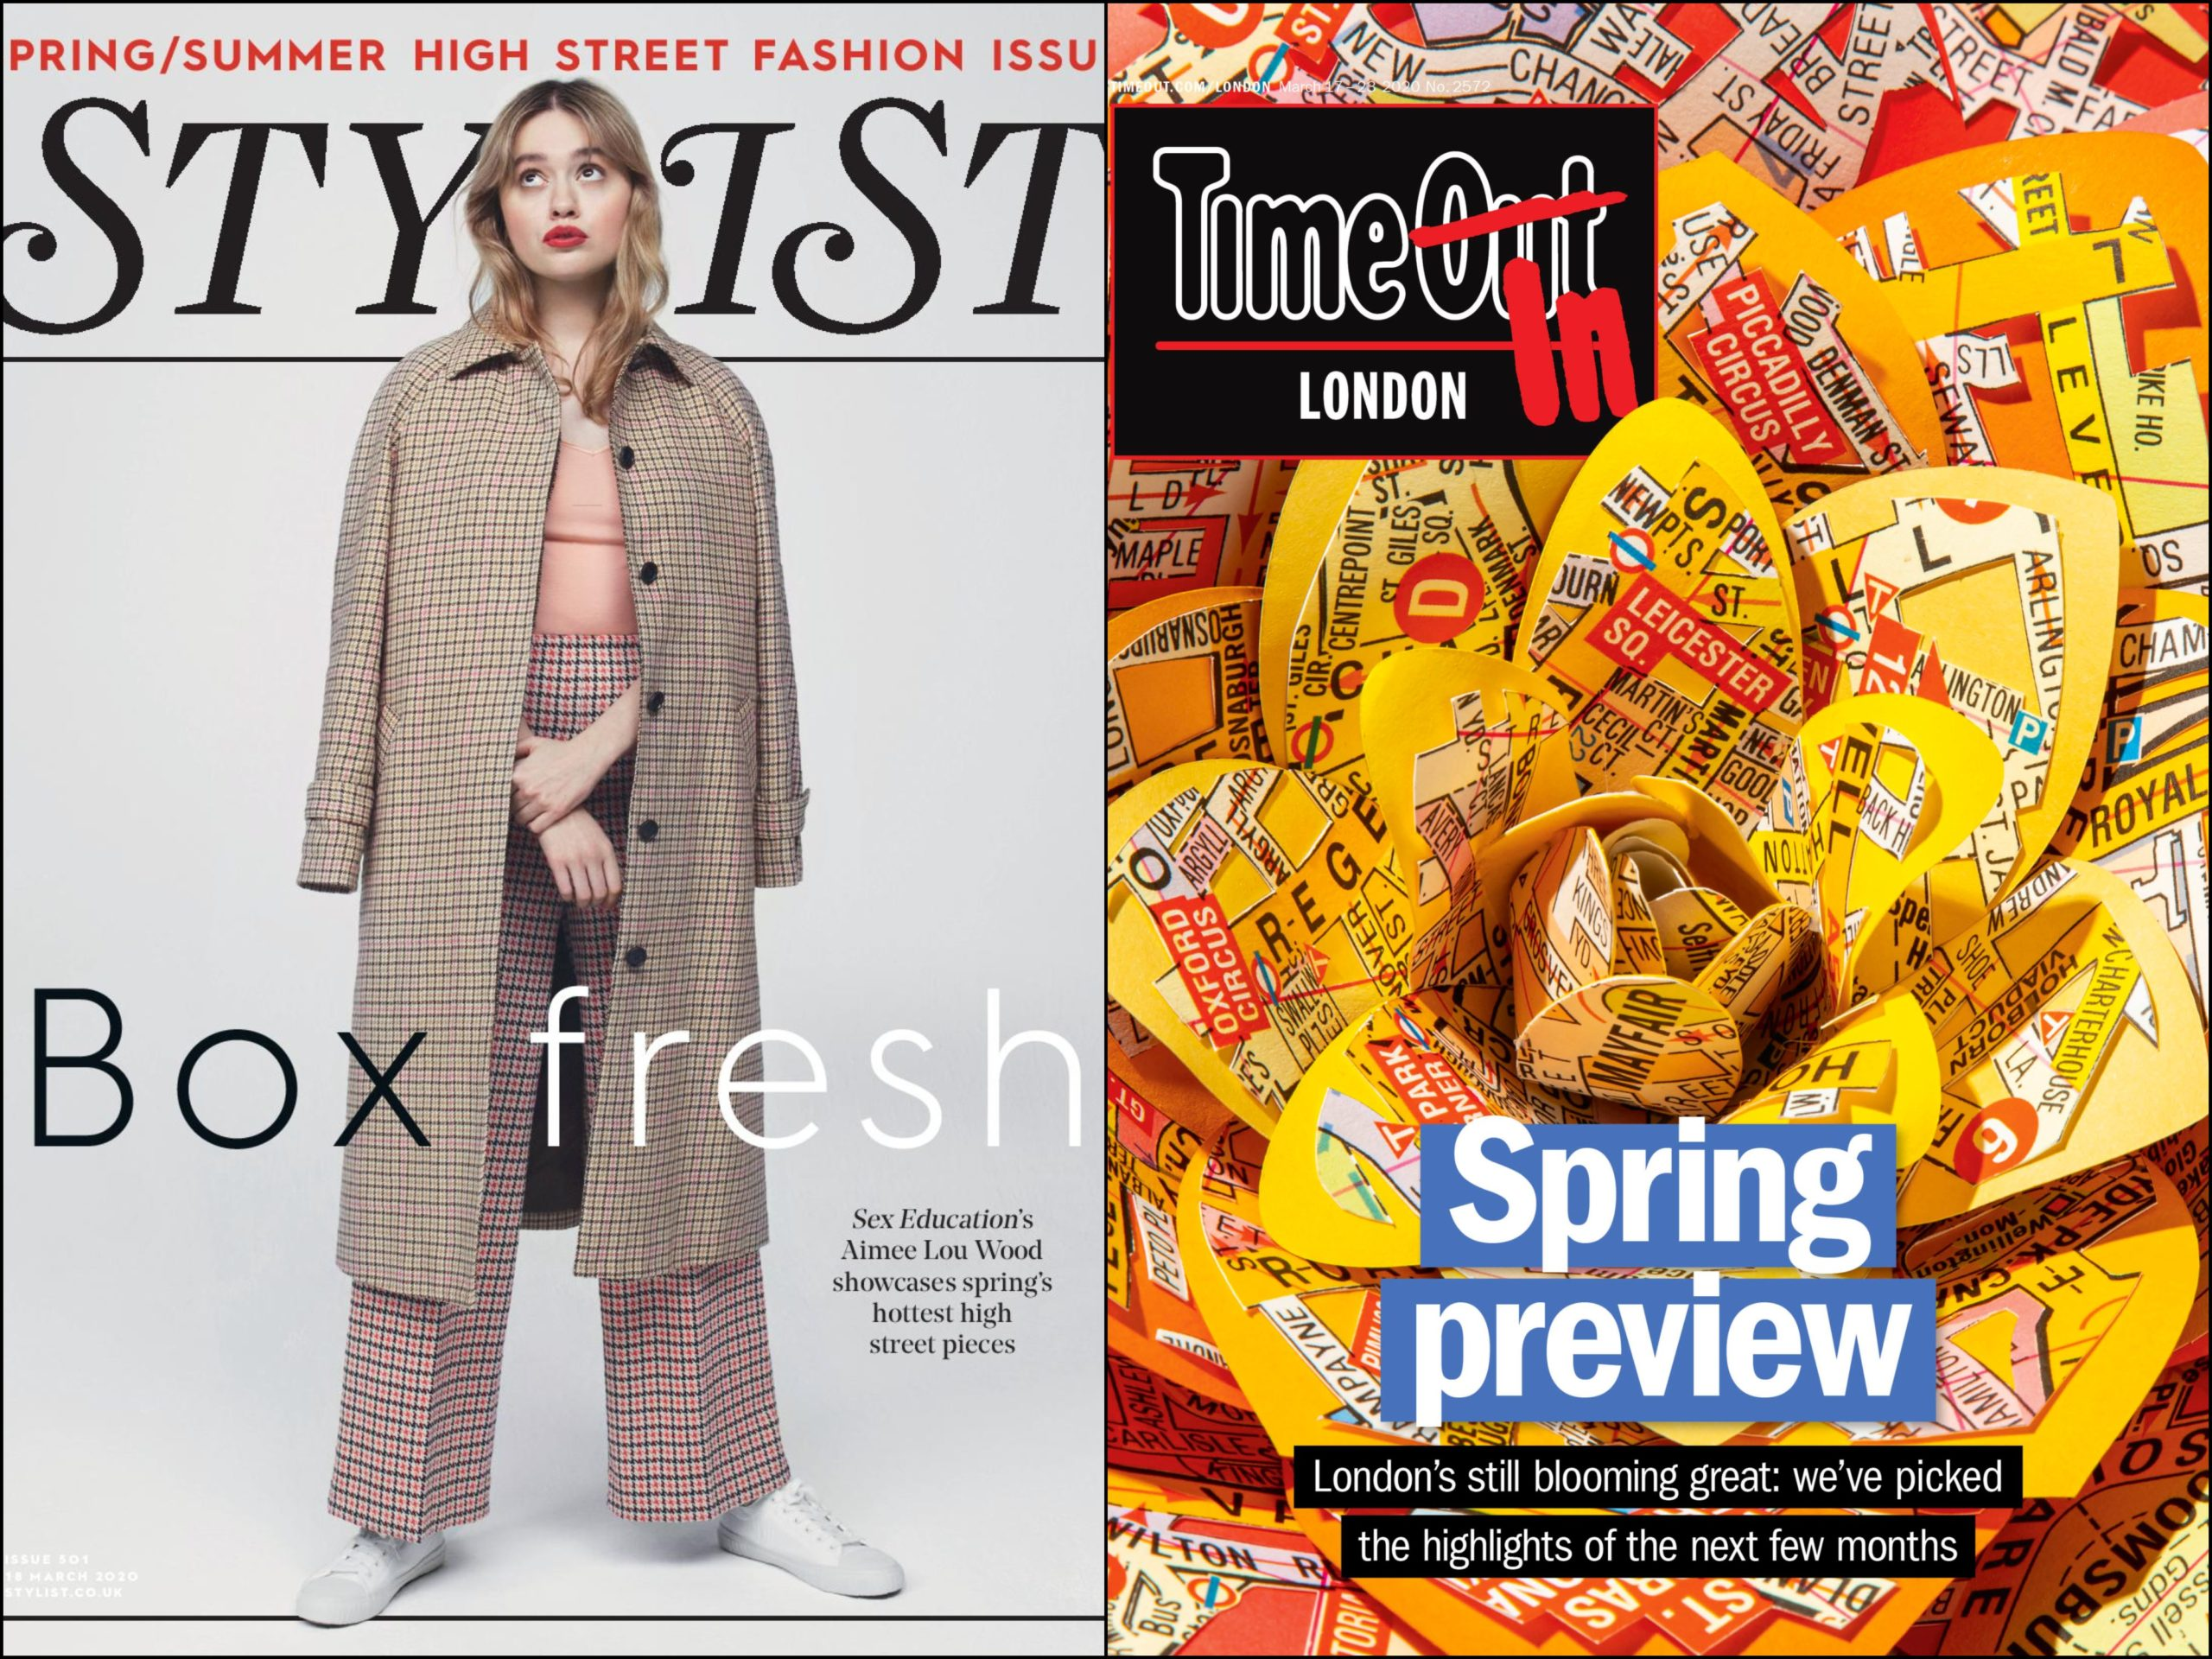 Coronavirus: Time Out and Stylist free magazines go digital-only as readers stay home